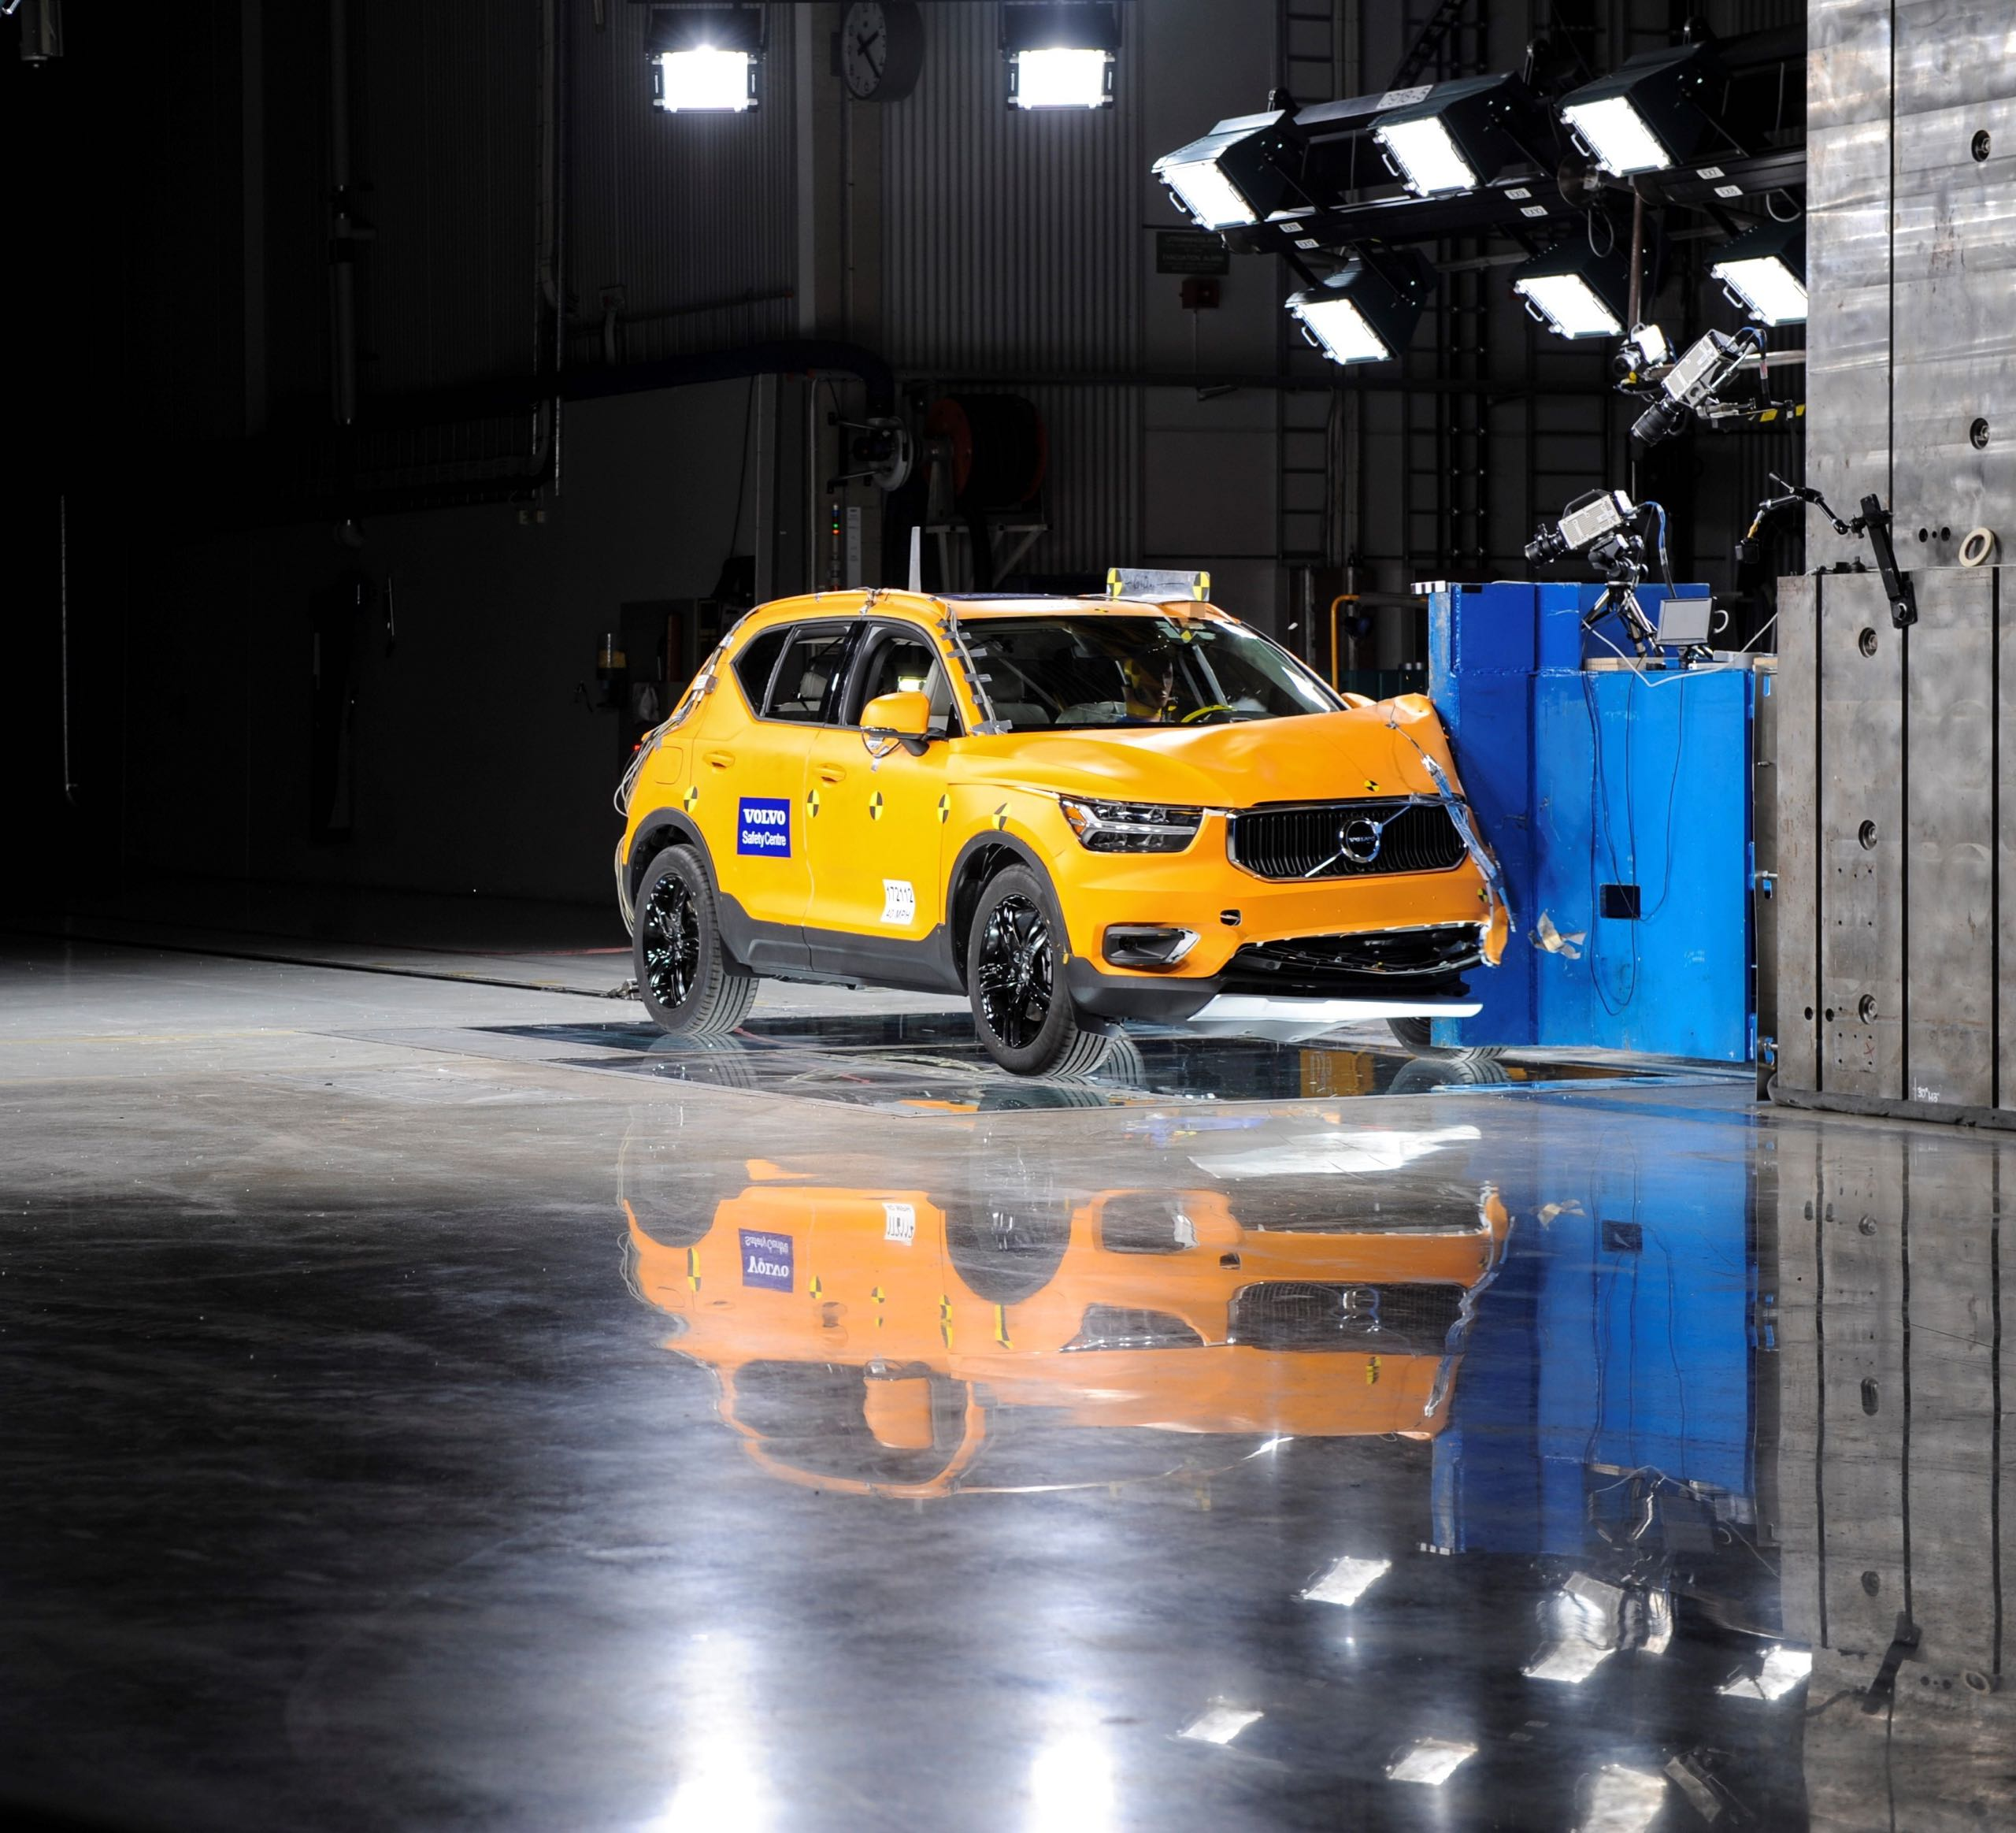 New Volvo XC40 Small Overlap Crash Test -  2017, 2018, 2018 New XC40, Exterior, Images, New XC40, Safety